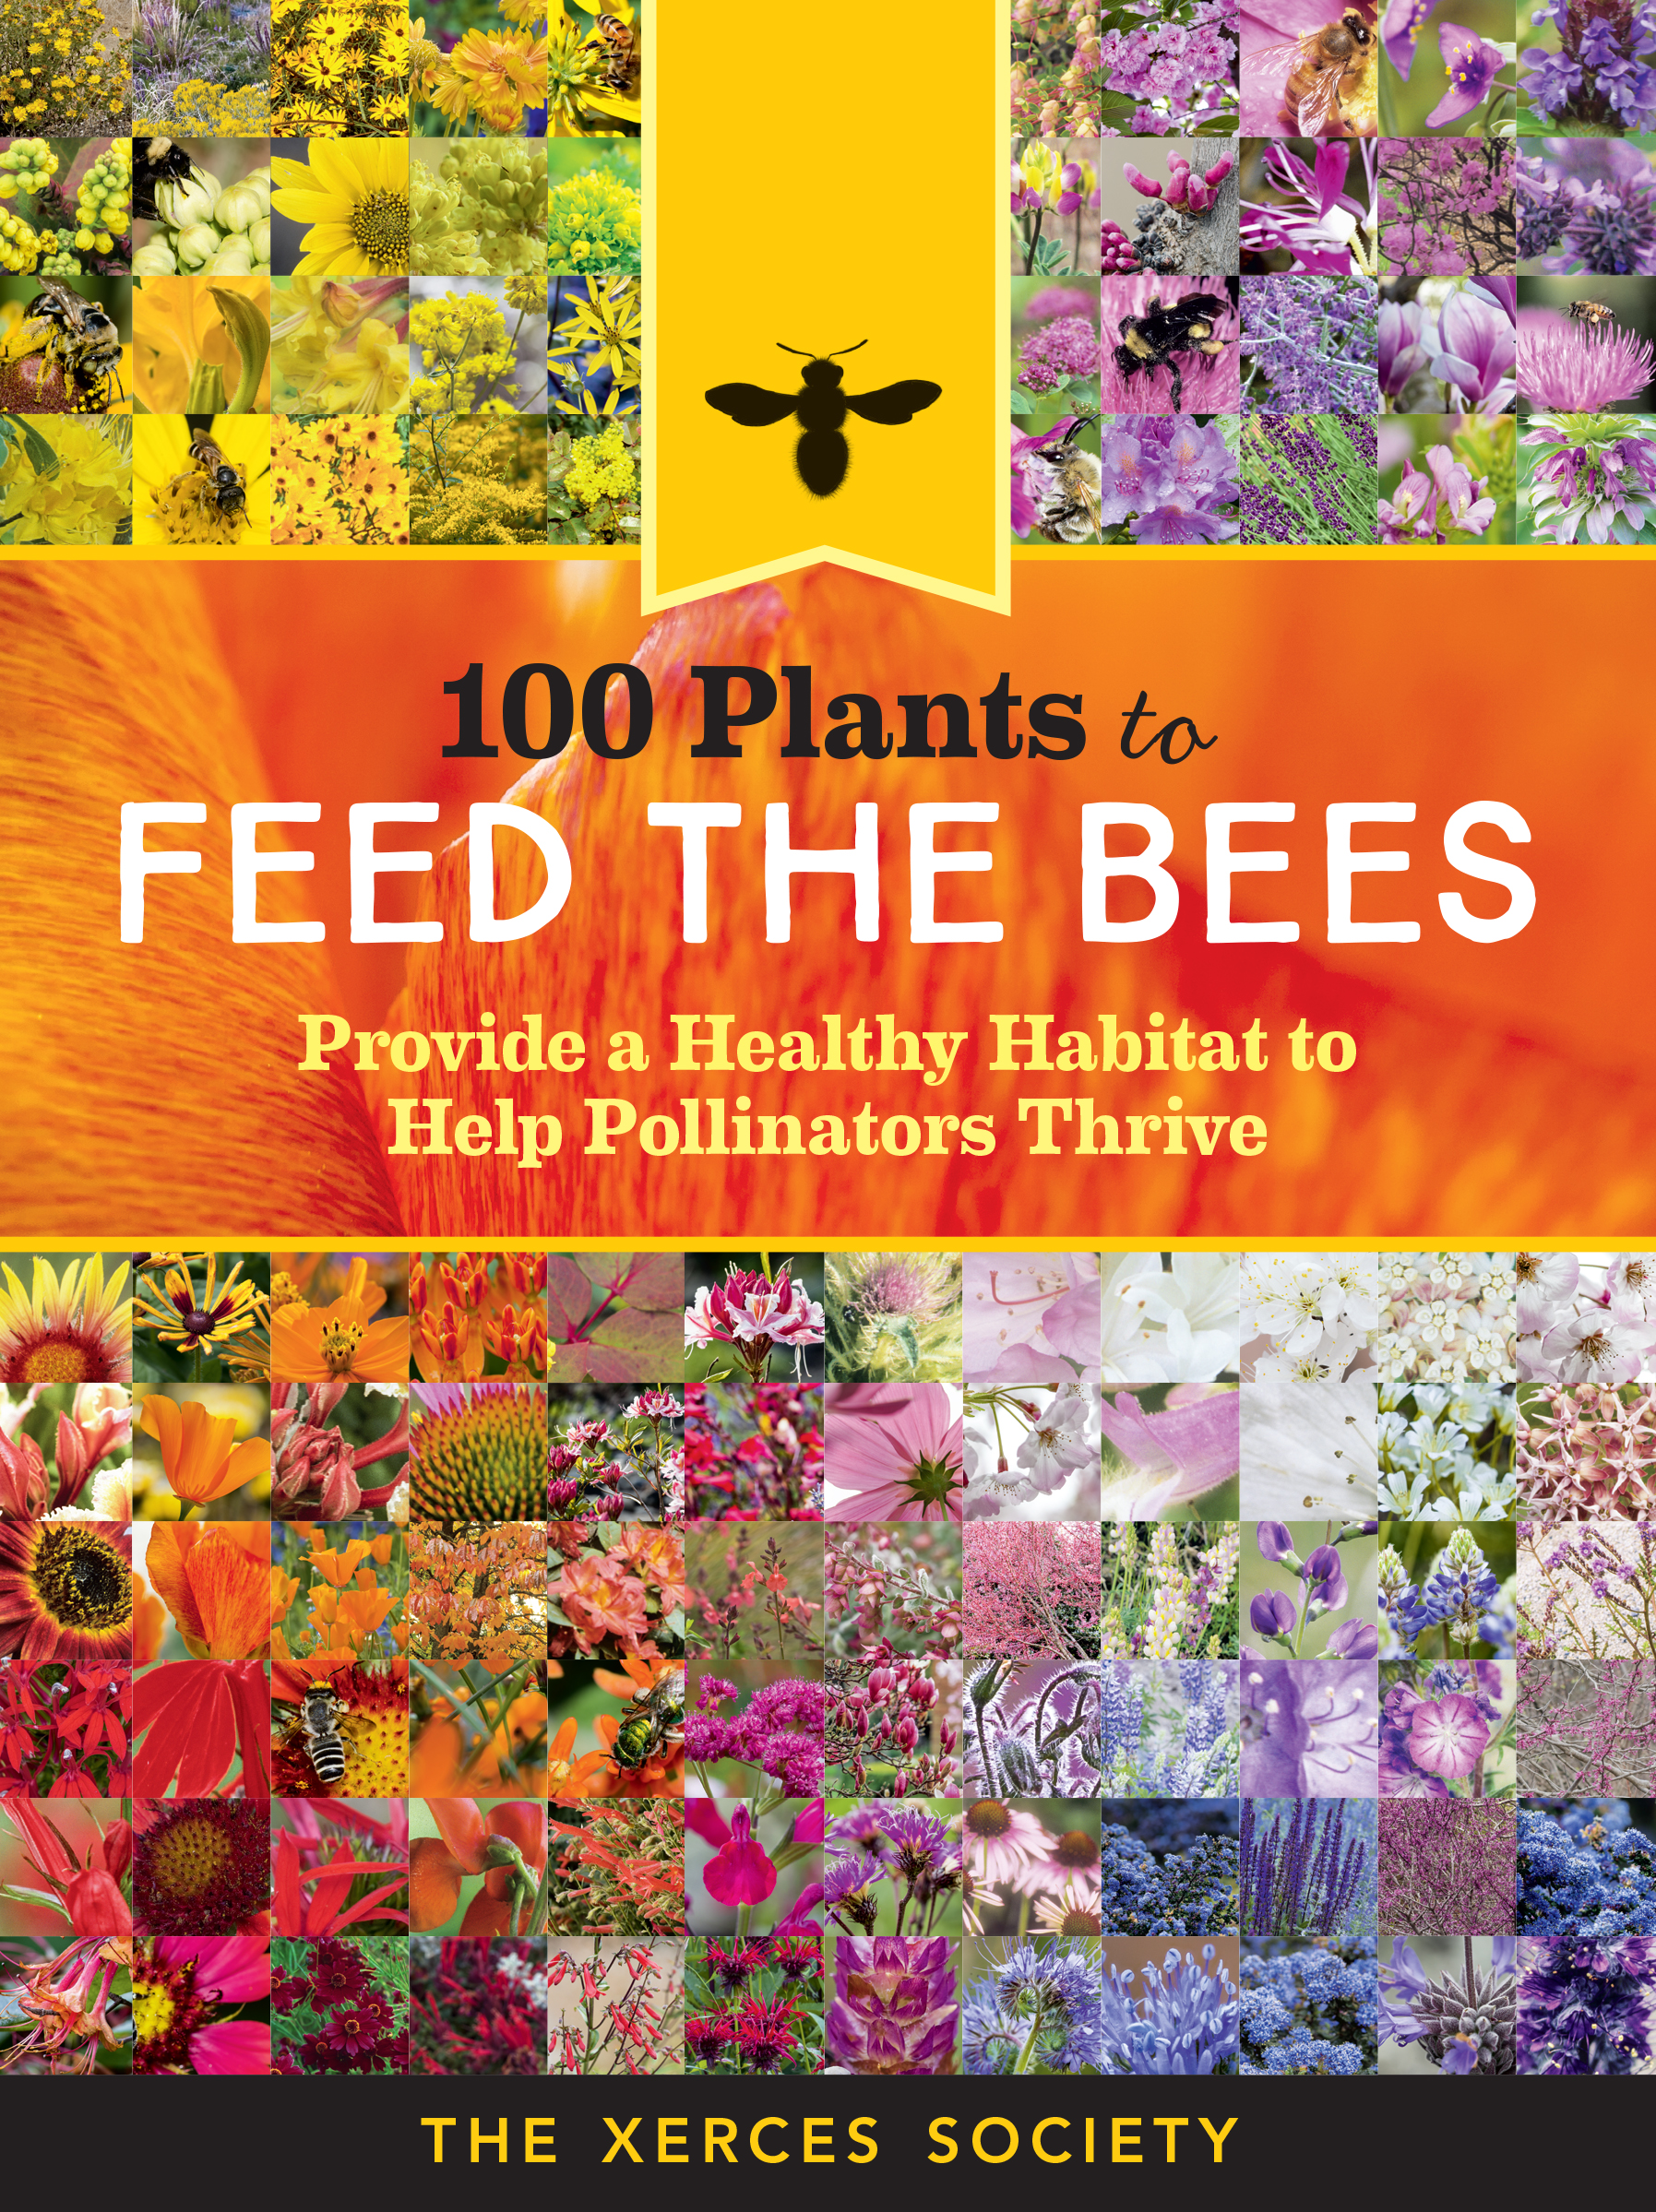 100 Plants to Feed the Bees Provide a Healthy Habitat to Help Pollinators Thrive - The Xerces Society